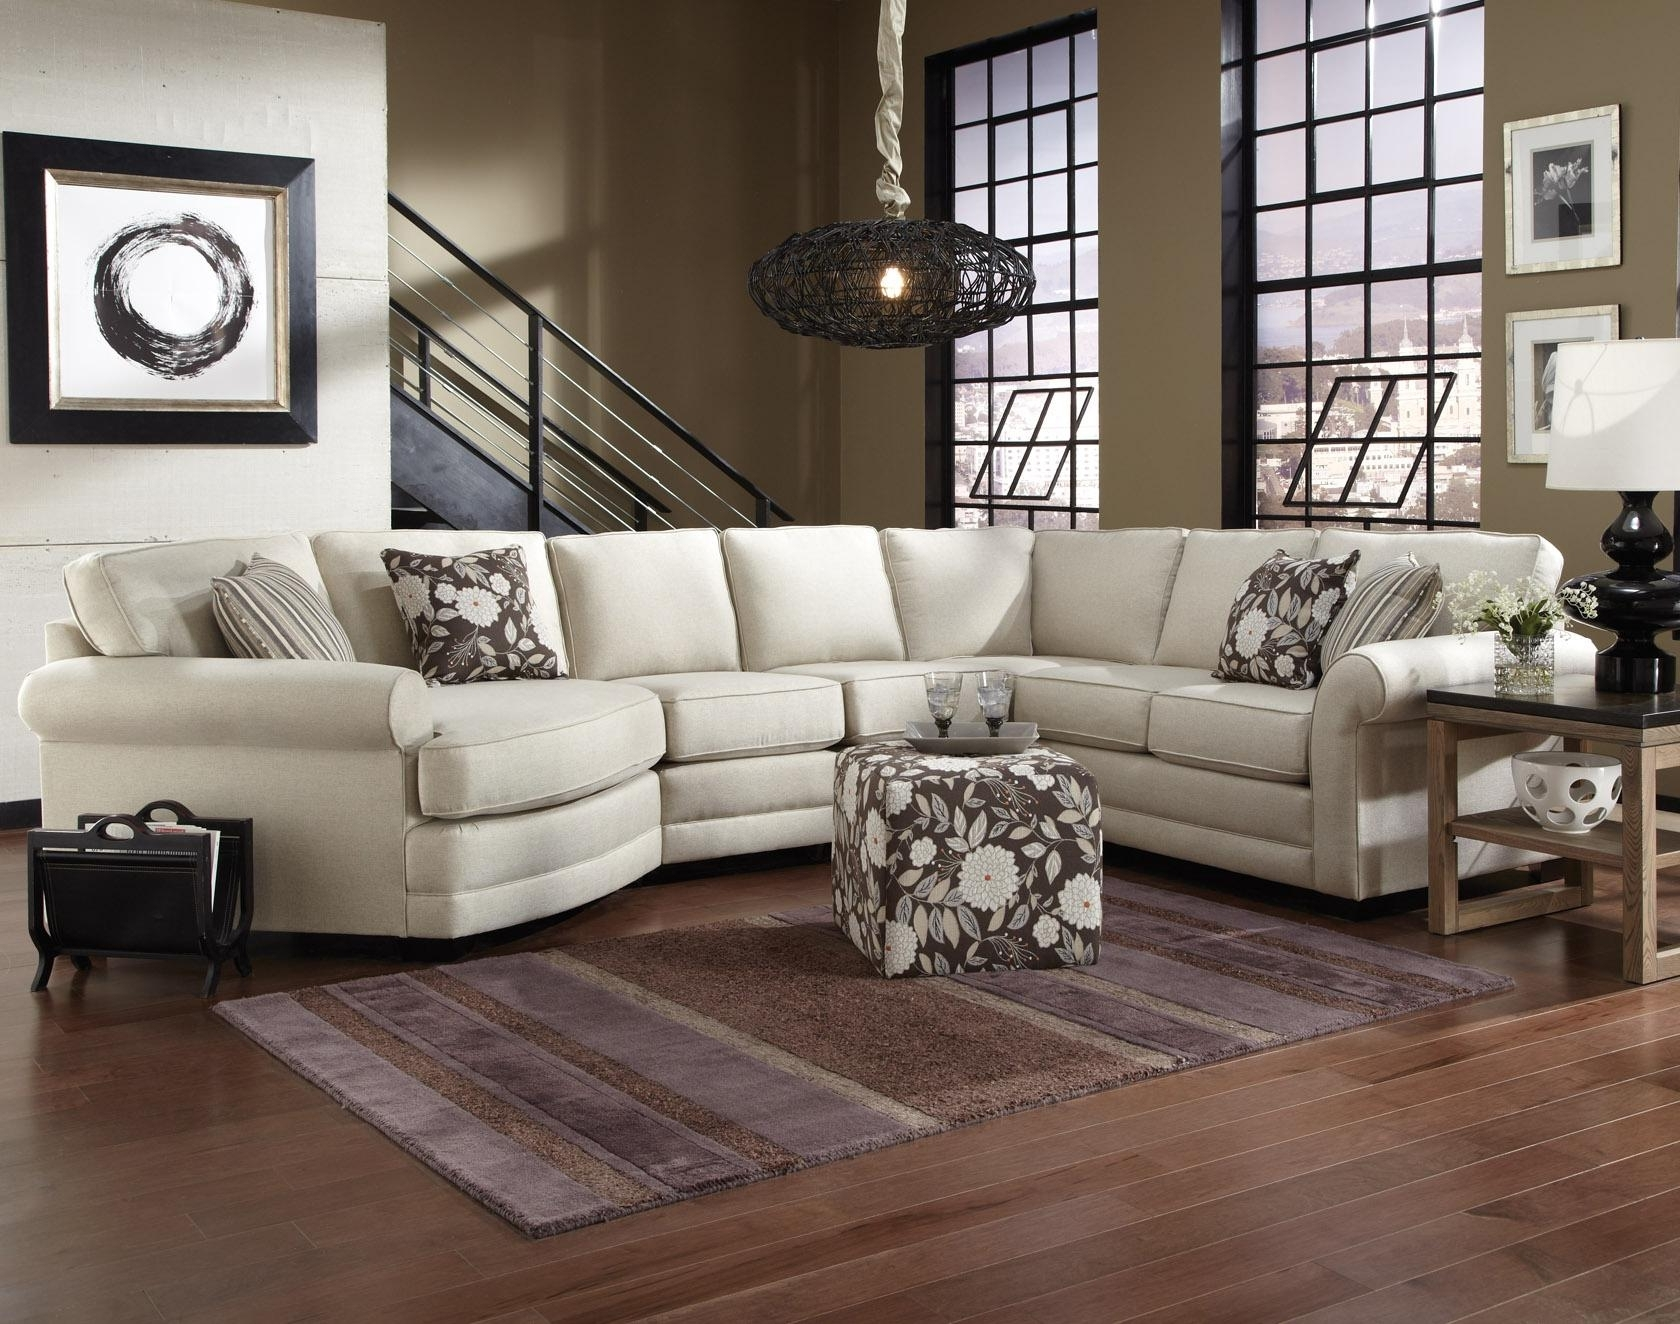 Little Rock Ar Sectional Sofas Intended For Most Current England Brantley 5 Seat Sectional Sofa With Cuddler – Ahfa – Sofa (View 13 of 20)